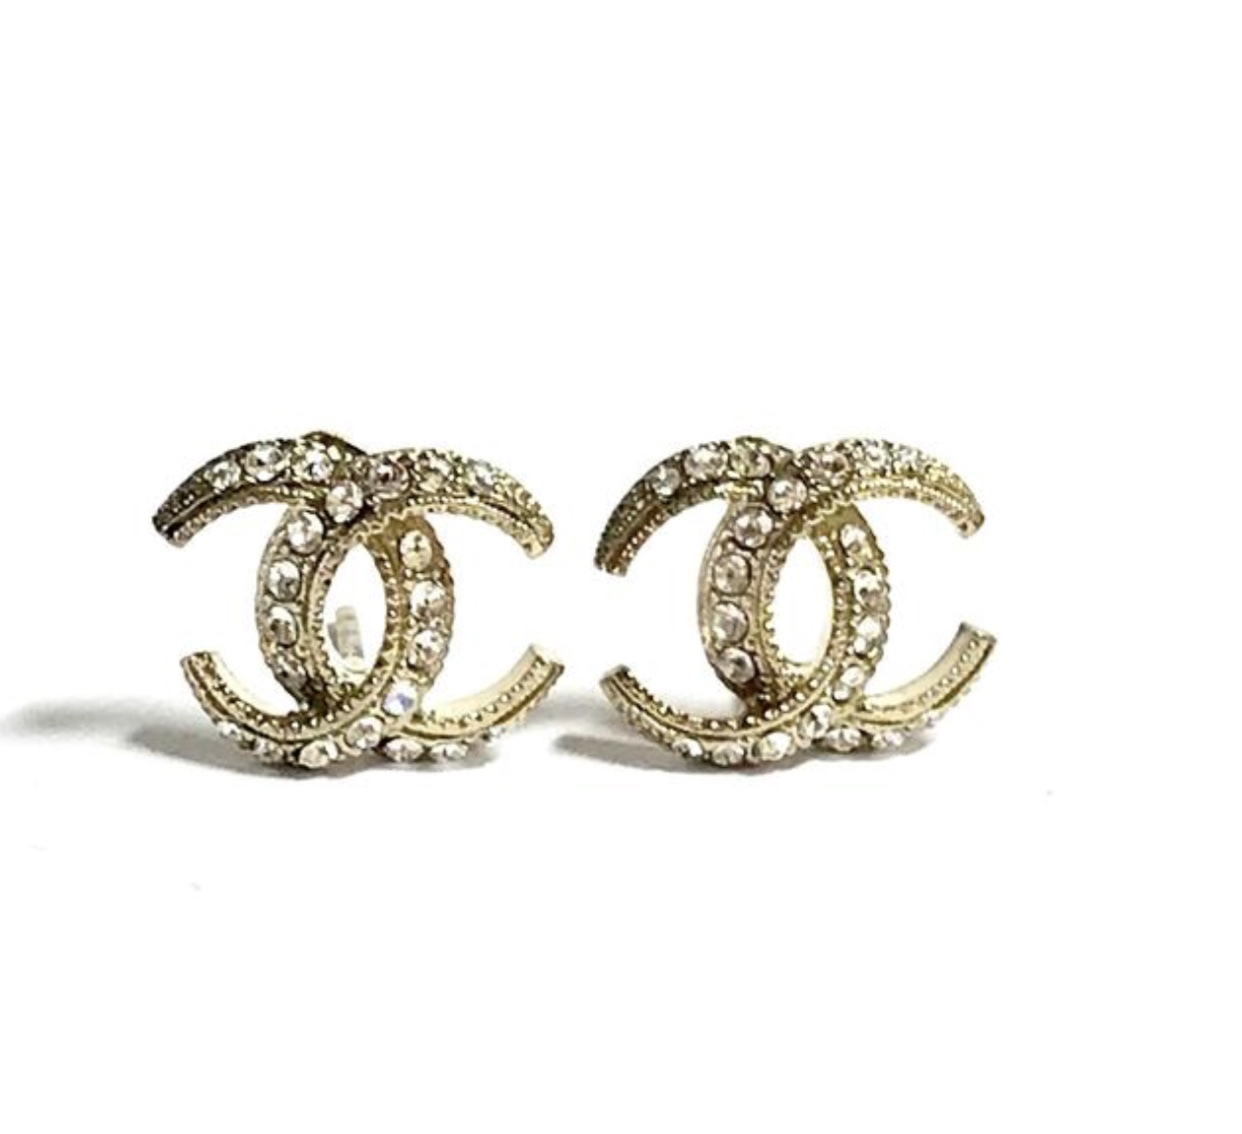 Authentic CHANEL CRESCENT MOON CRYSTAL CC Logo Stud Earrings Gold